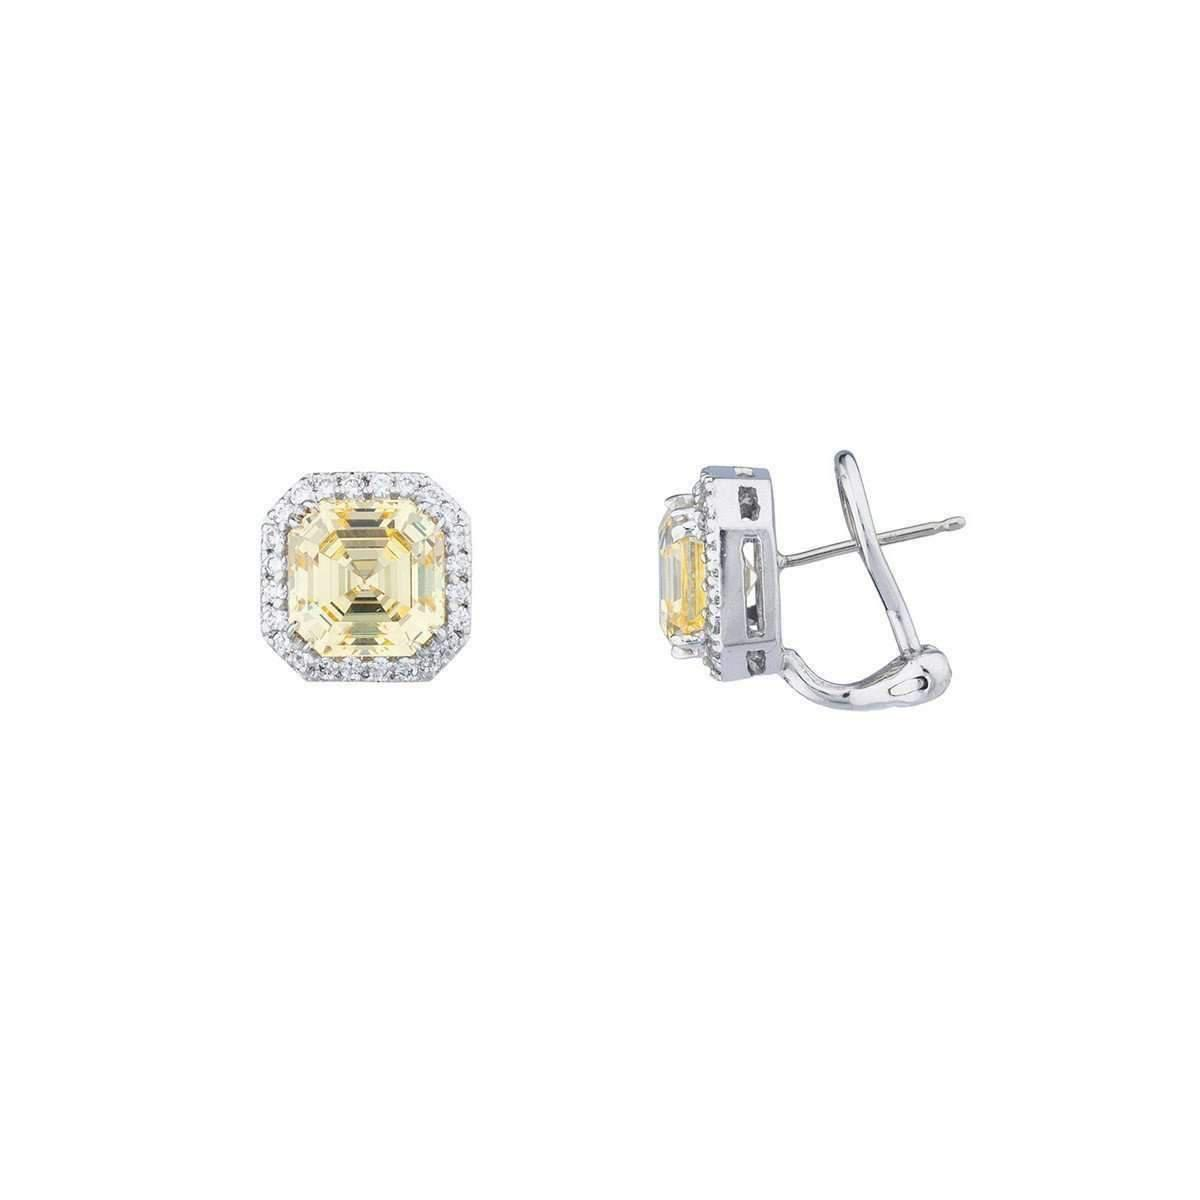 Fantasia Sterling Silver & Palladium Canary Pave Set Asscher Stud Earrings wR0vNO